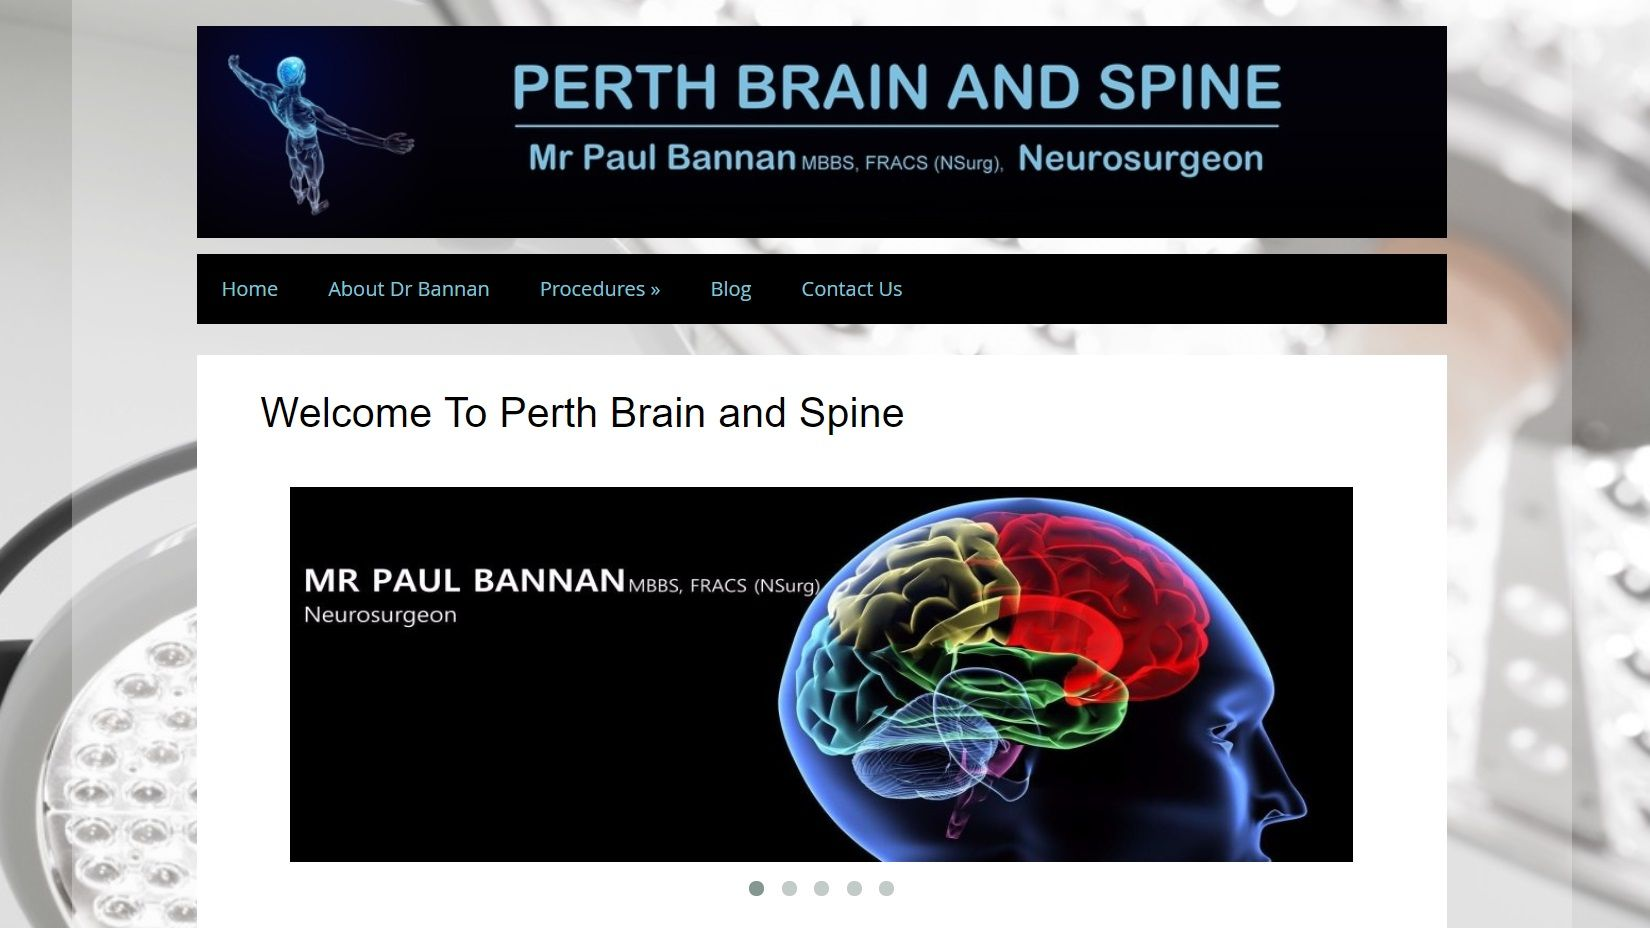 Dr Paul Bannan, Neurosurgeon in Perth, Western Australia